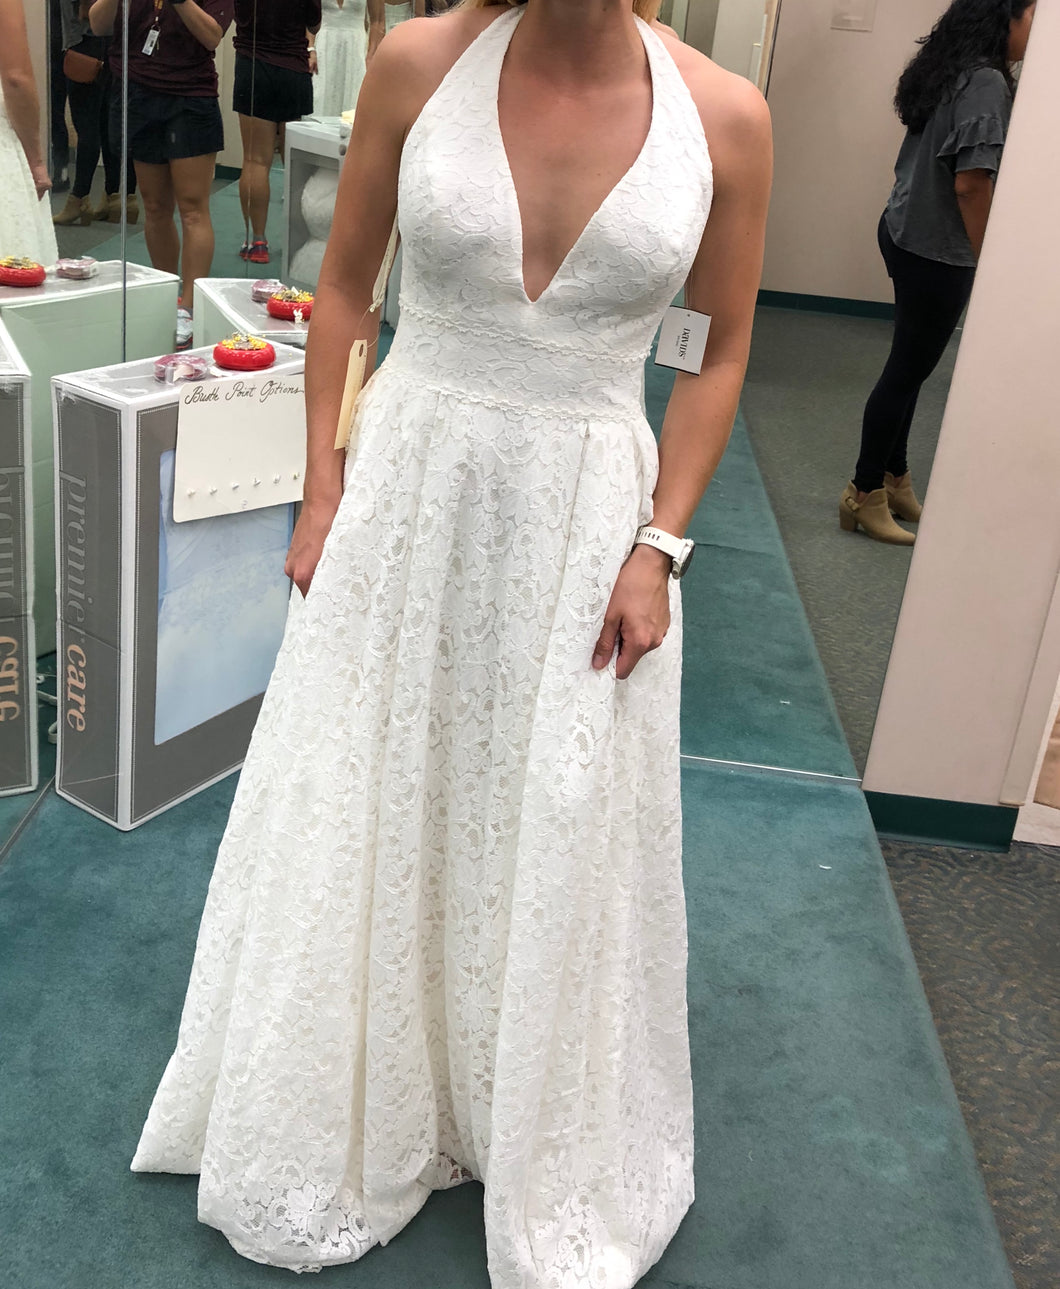 David's Bridal 'Lace Halter' size 6 new wedding dress front view on bride